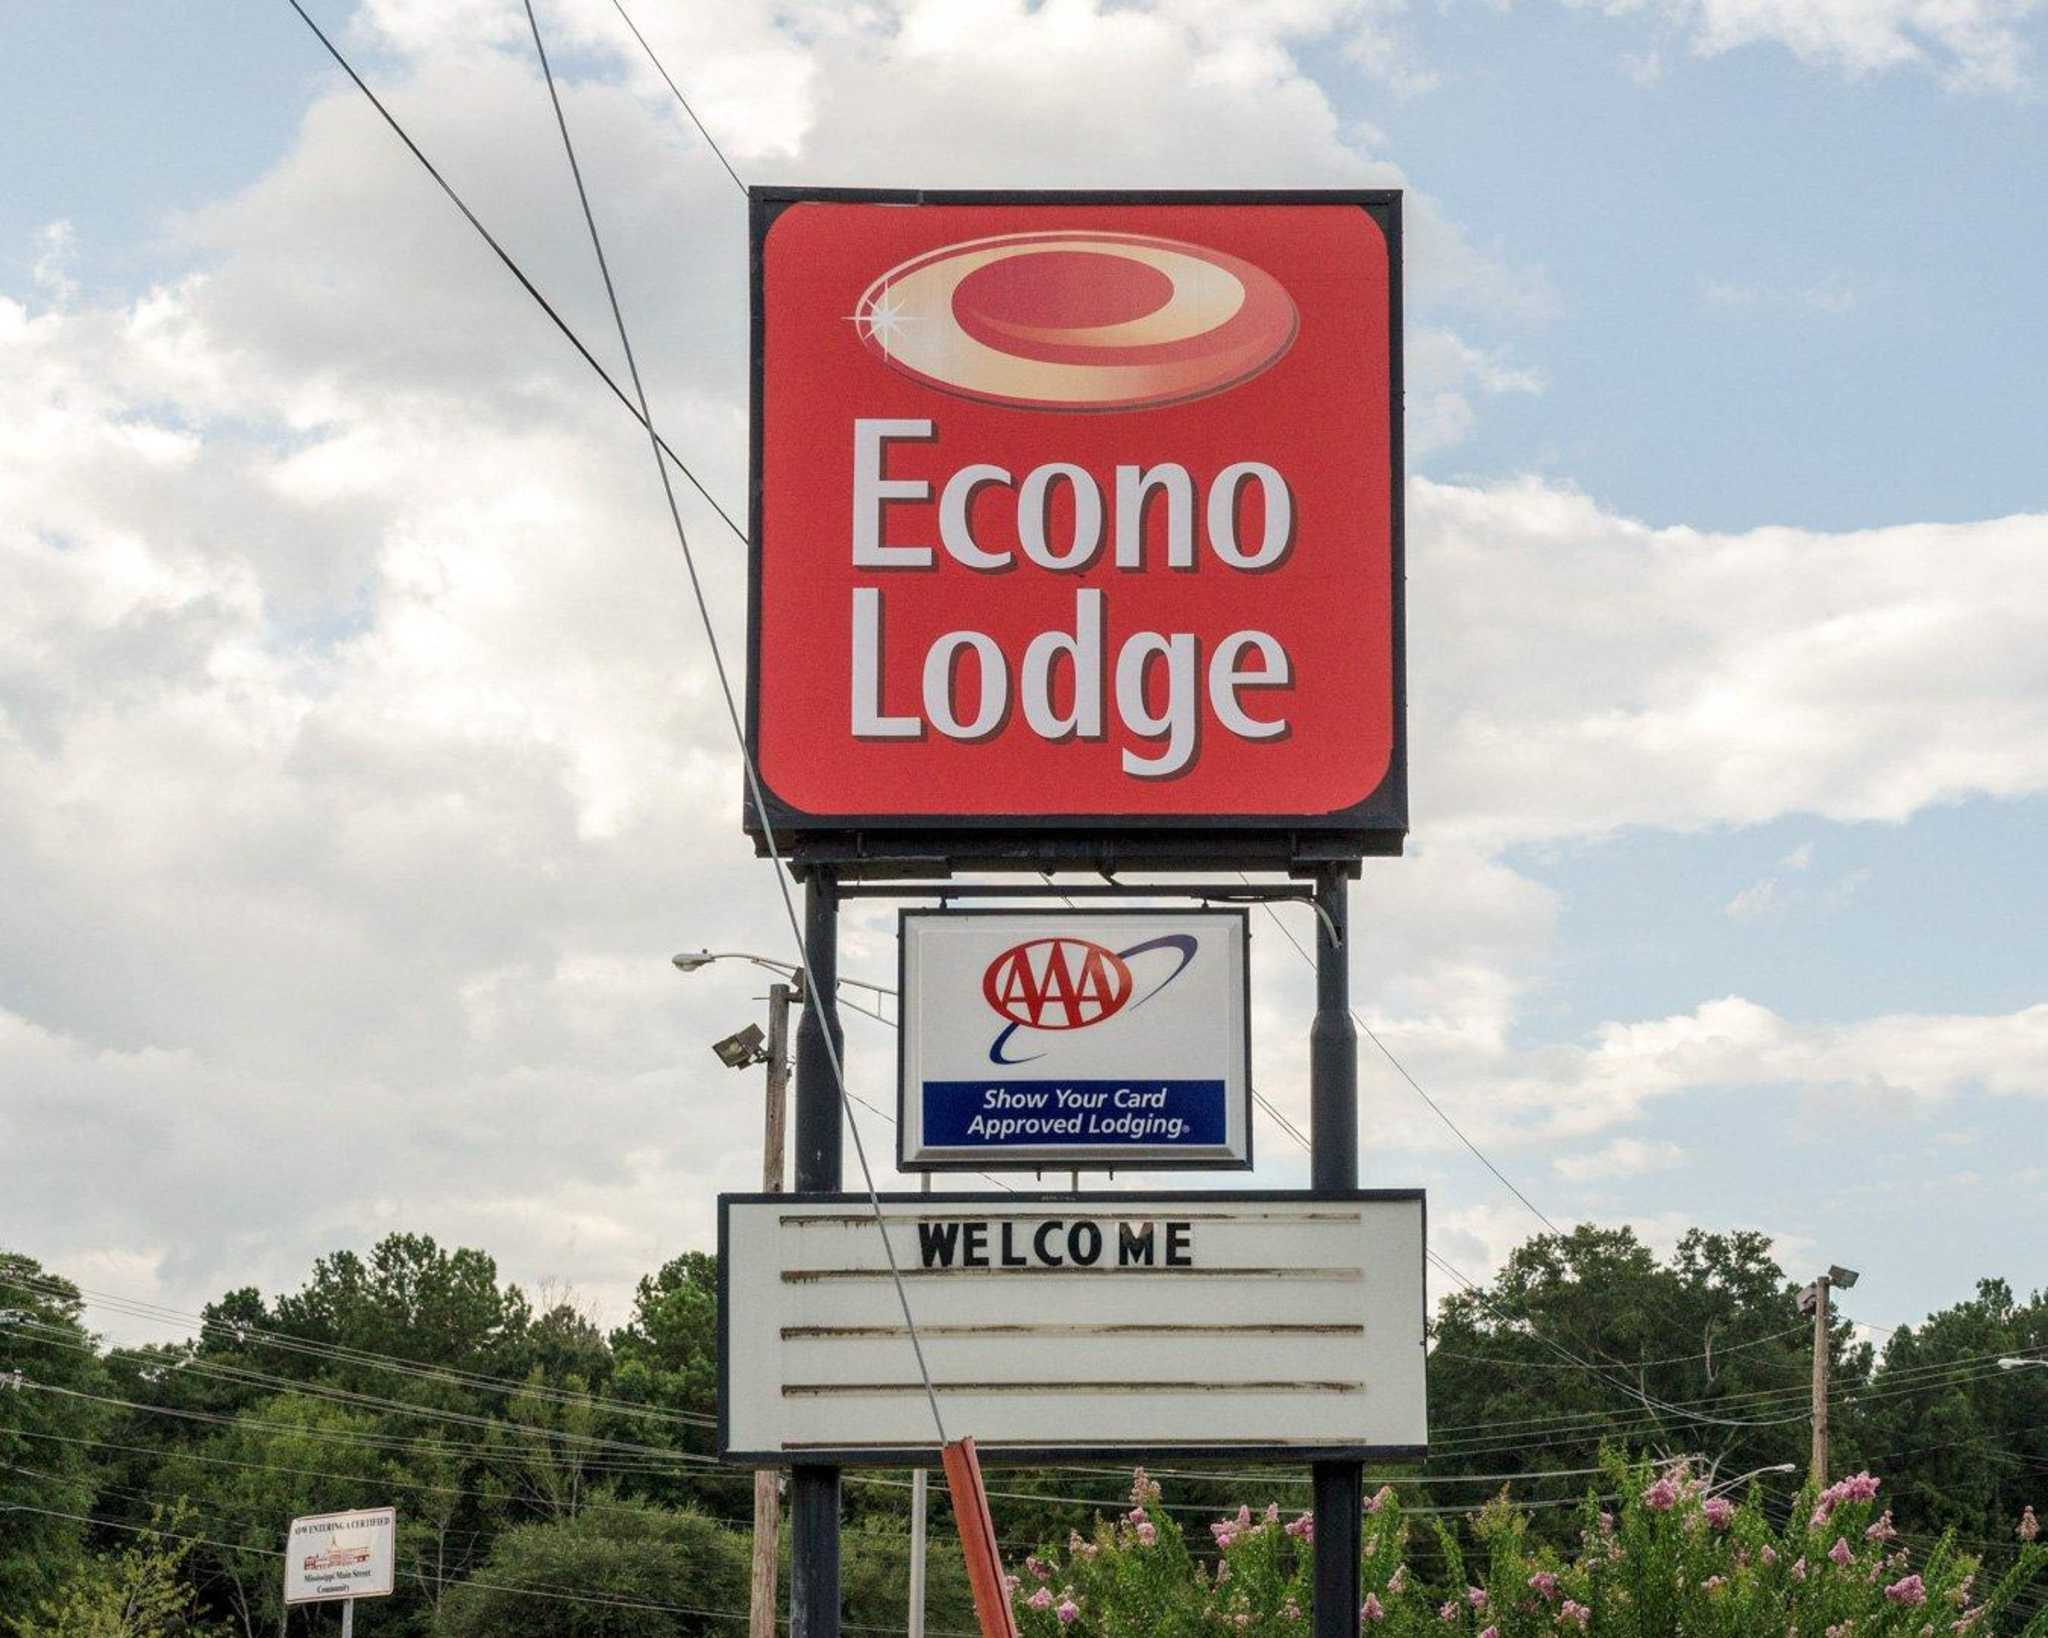 Econo Lodge Coupons Kosciusko Ms Near Me 8coupons